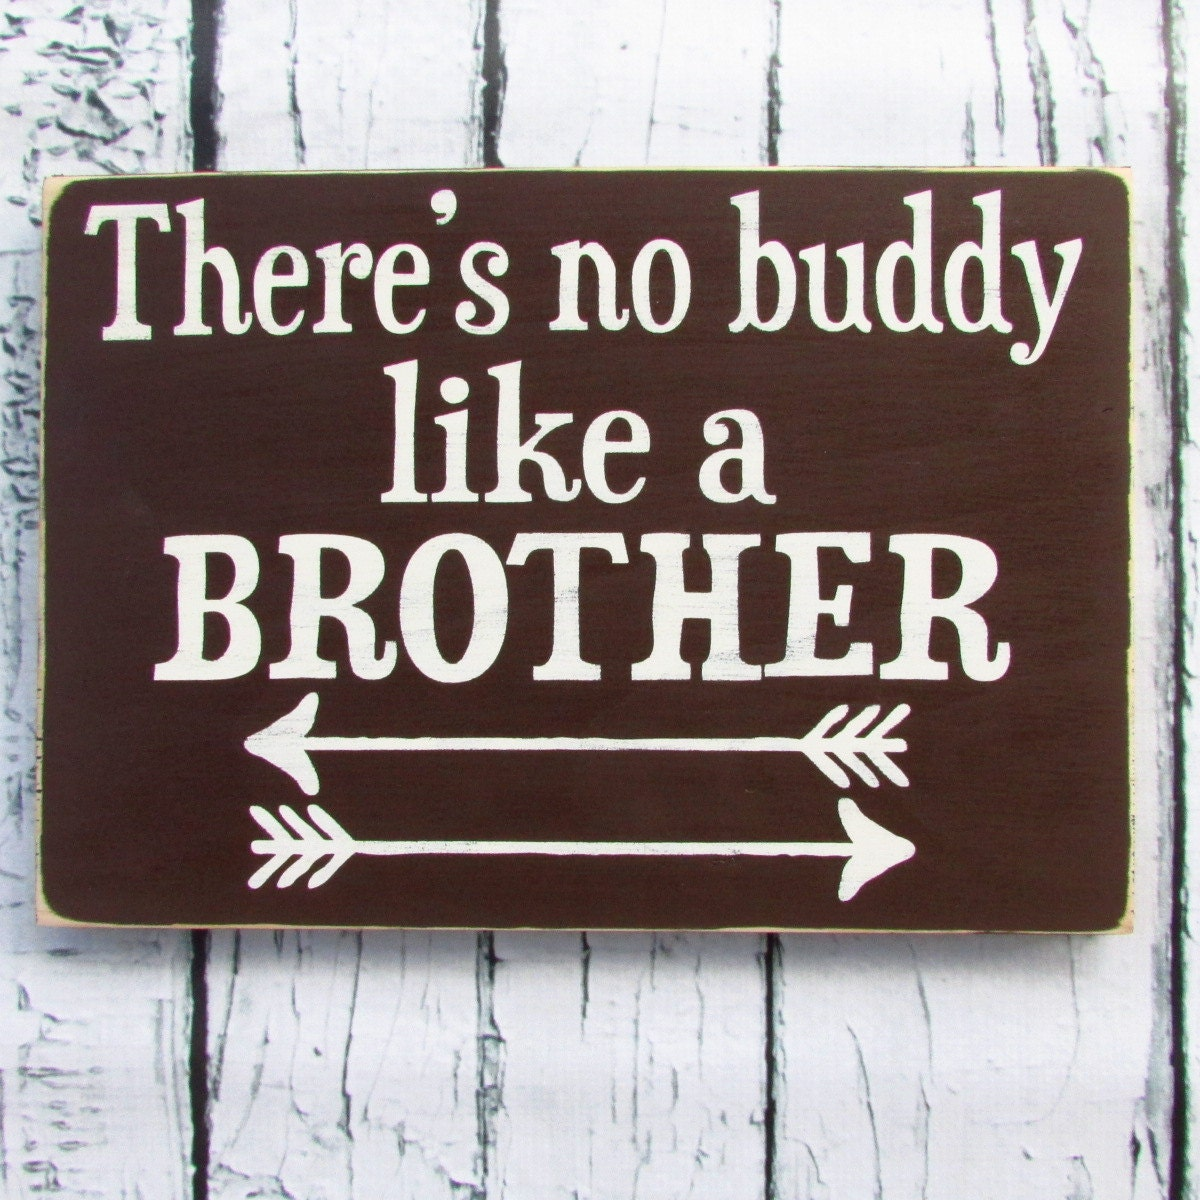 There's No Buddy Like A Brother Wood Sign Arrows. Clear Sticker Printing Paper Best Way Auto. Inclusive Special Education D Dish Portland. Morris Material Handling Saint Leo University. Iso Internal Auditor Training. Nursing Case Management Certification Courses. Manufactured Home Owners Insurance. Top Aviation Schools In The World. Corporate Office Phone Numbers